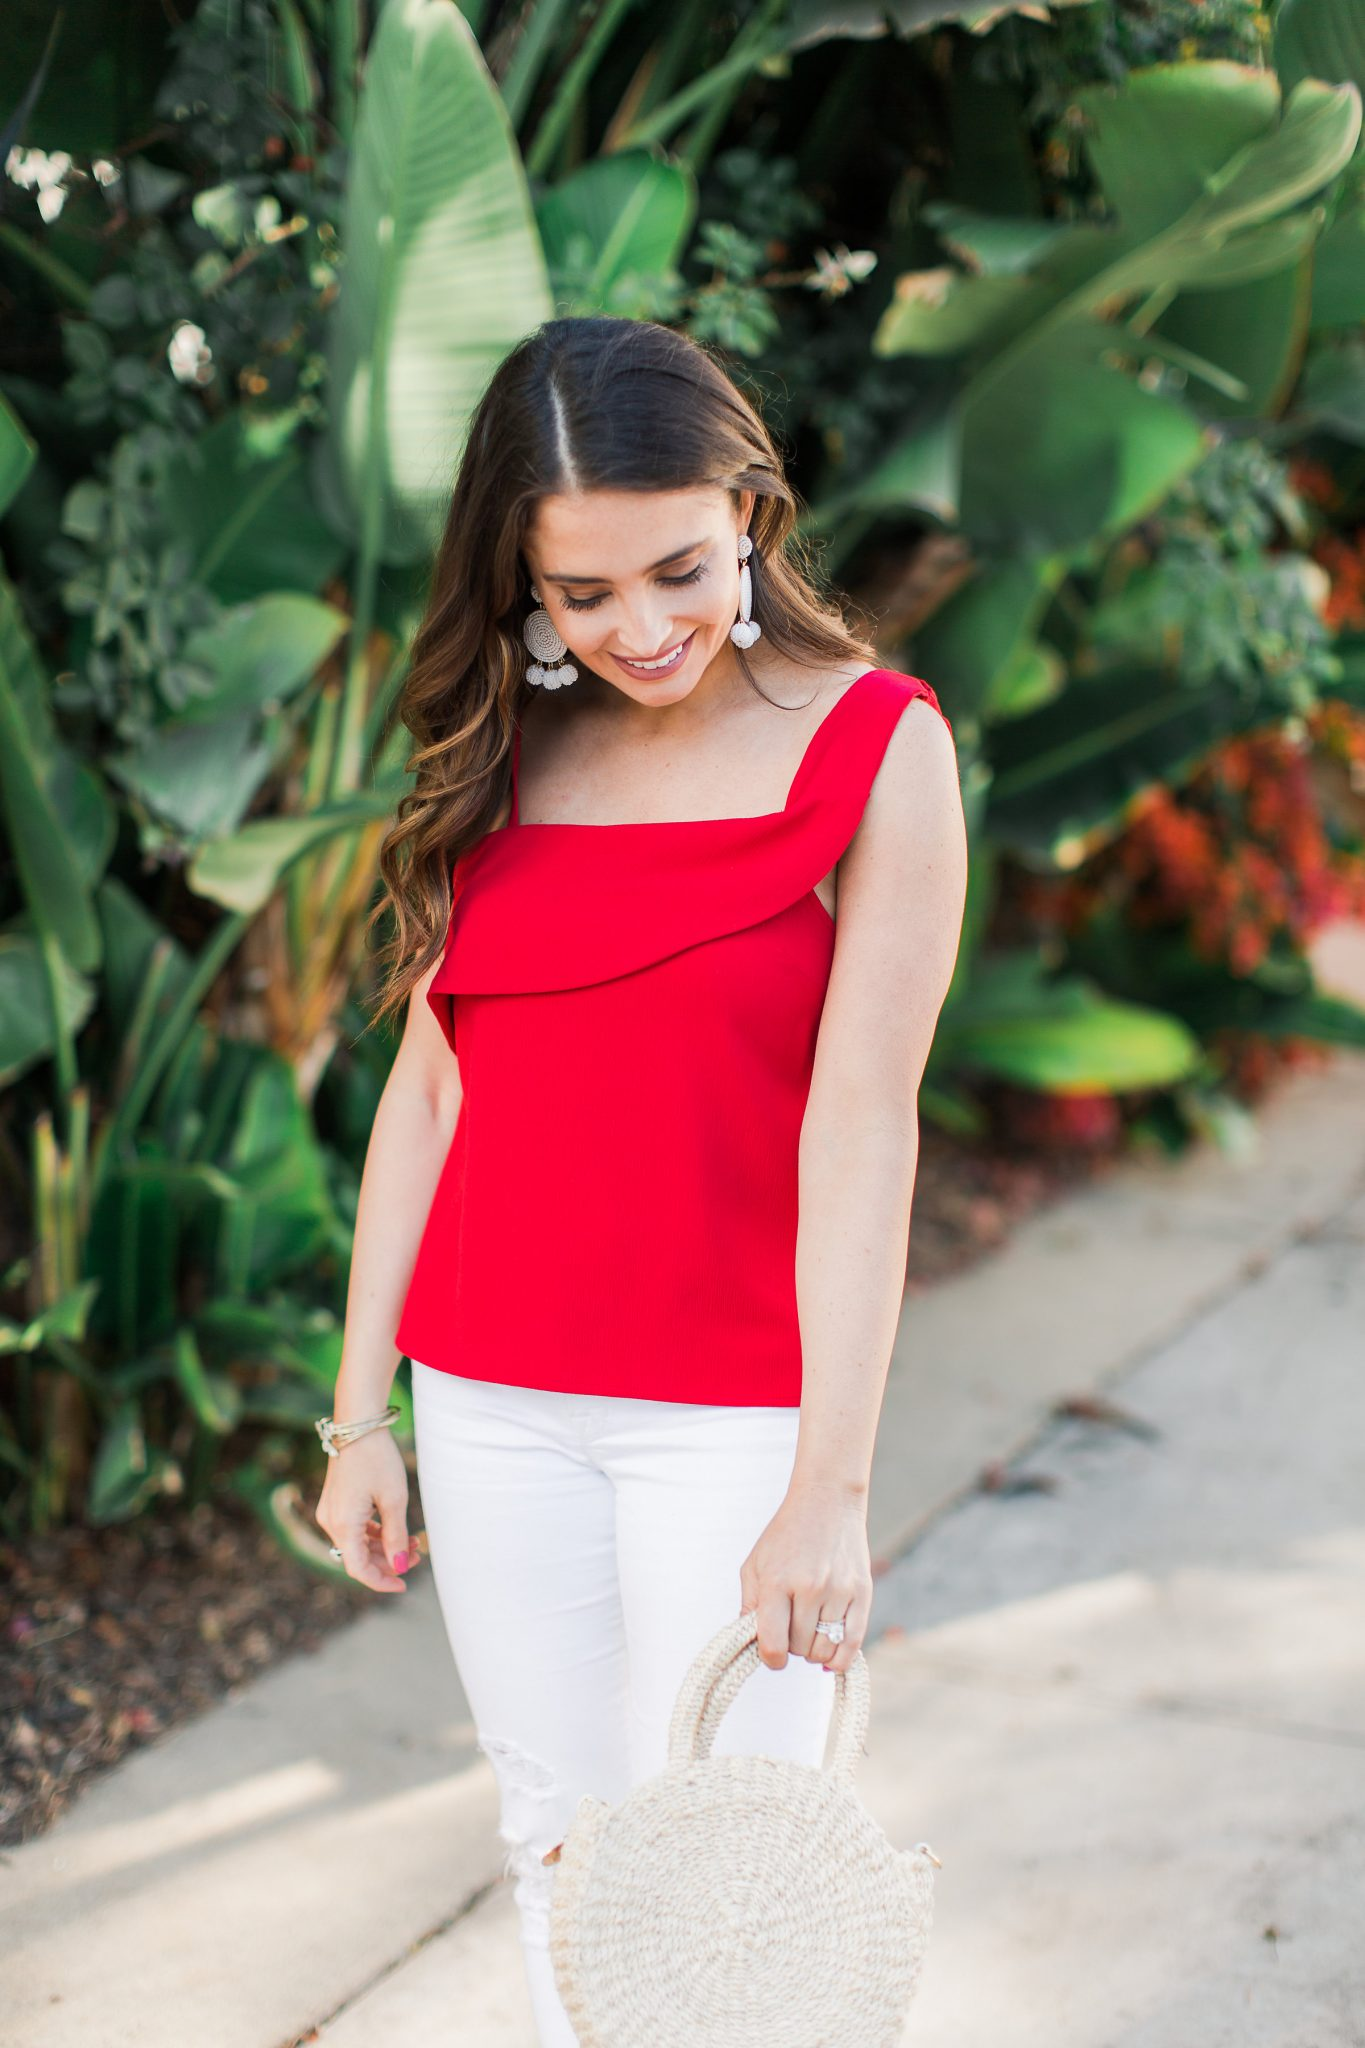 The Ms Collection Review by popular Orange County fashion blogger Maxie Elle